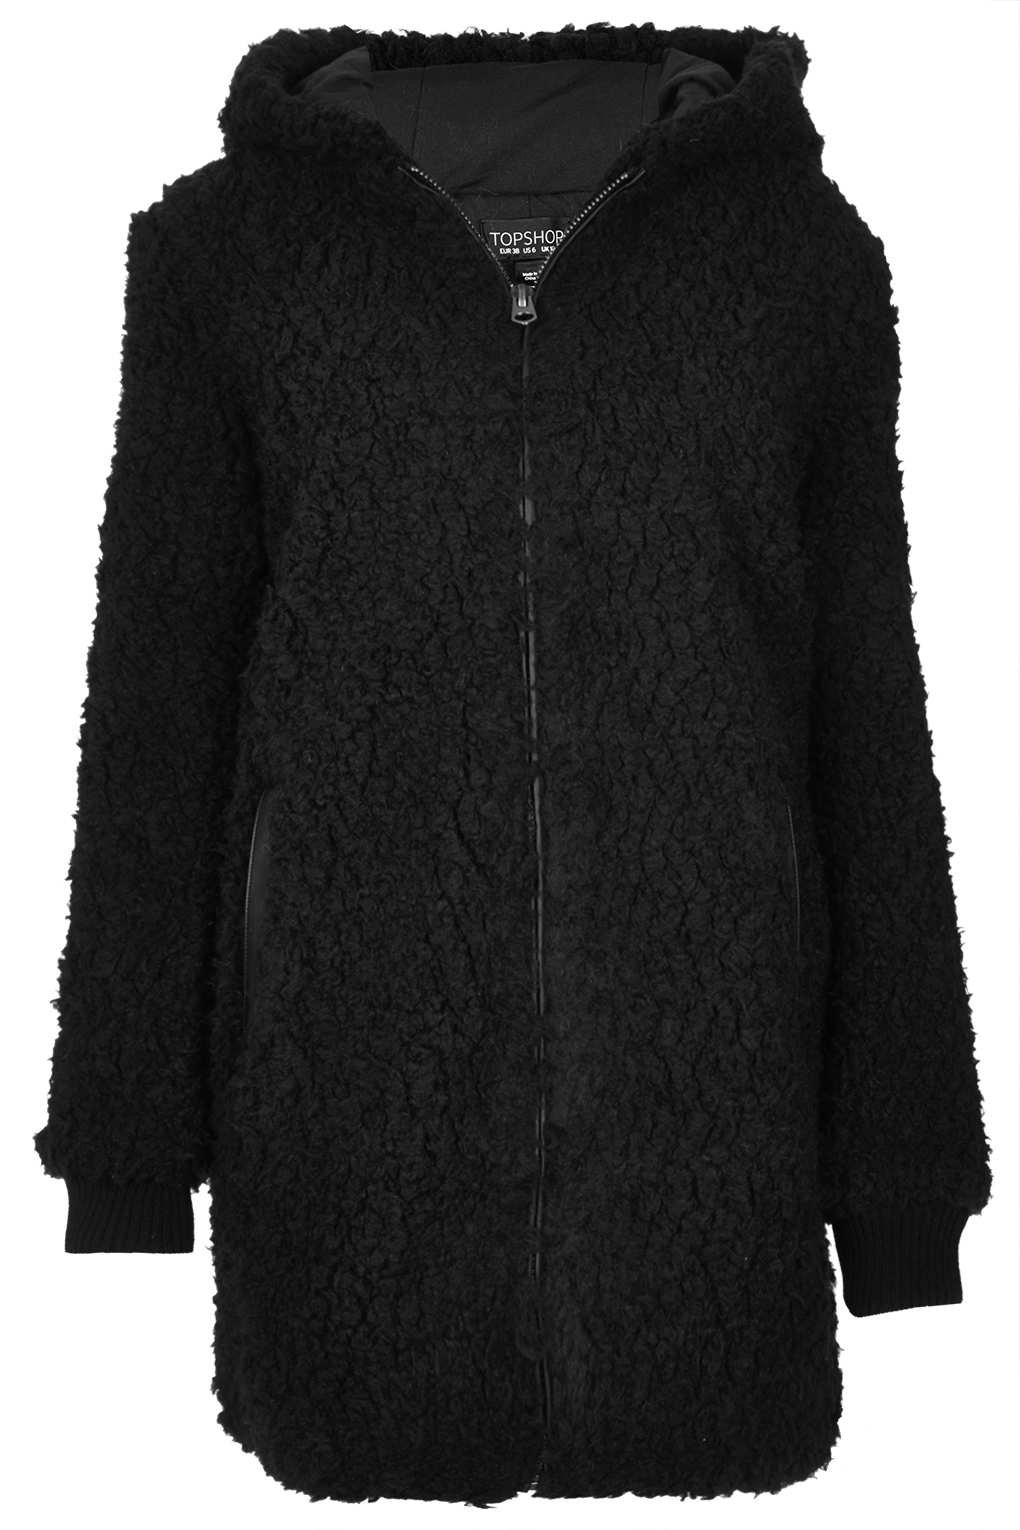 Topshop Hooded Borg Coat In Black Lyst